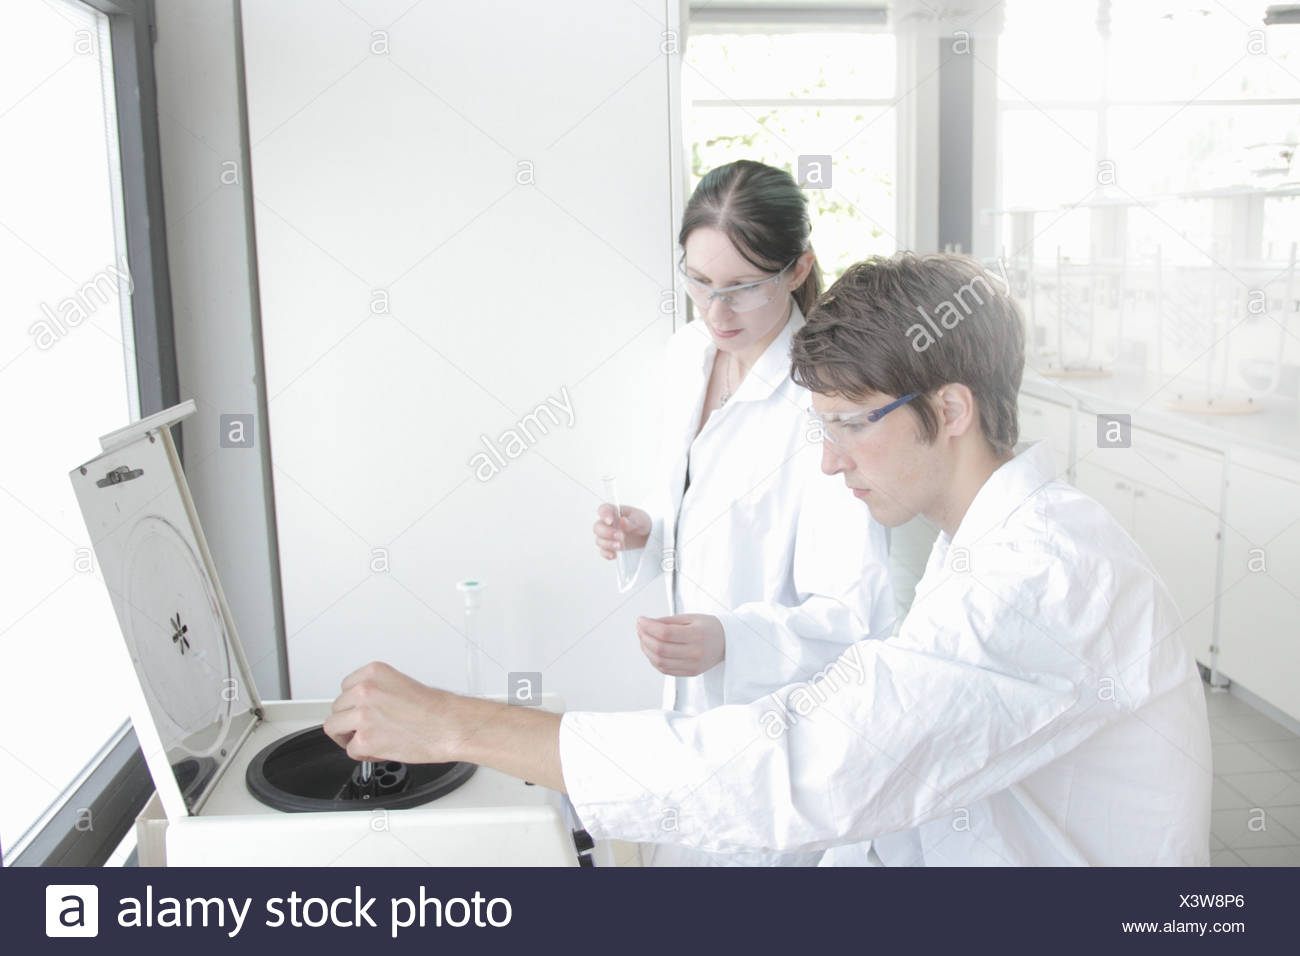 Chemistry students using equipment in laboratory - Stock Image